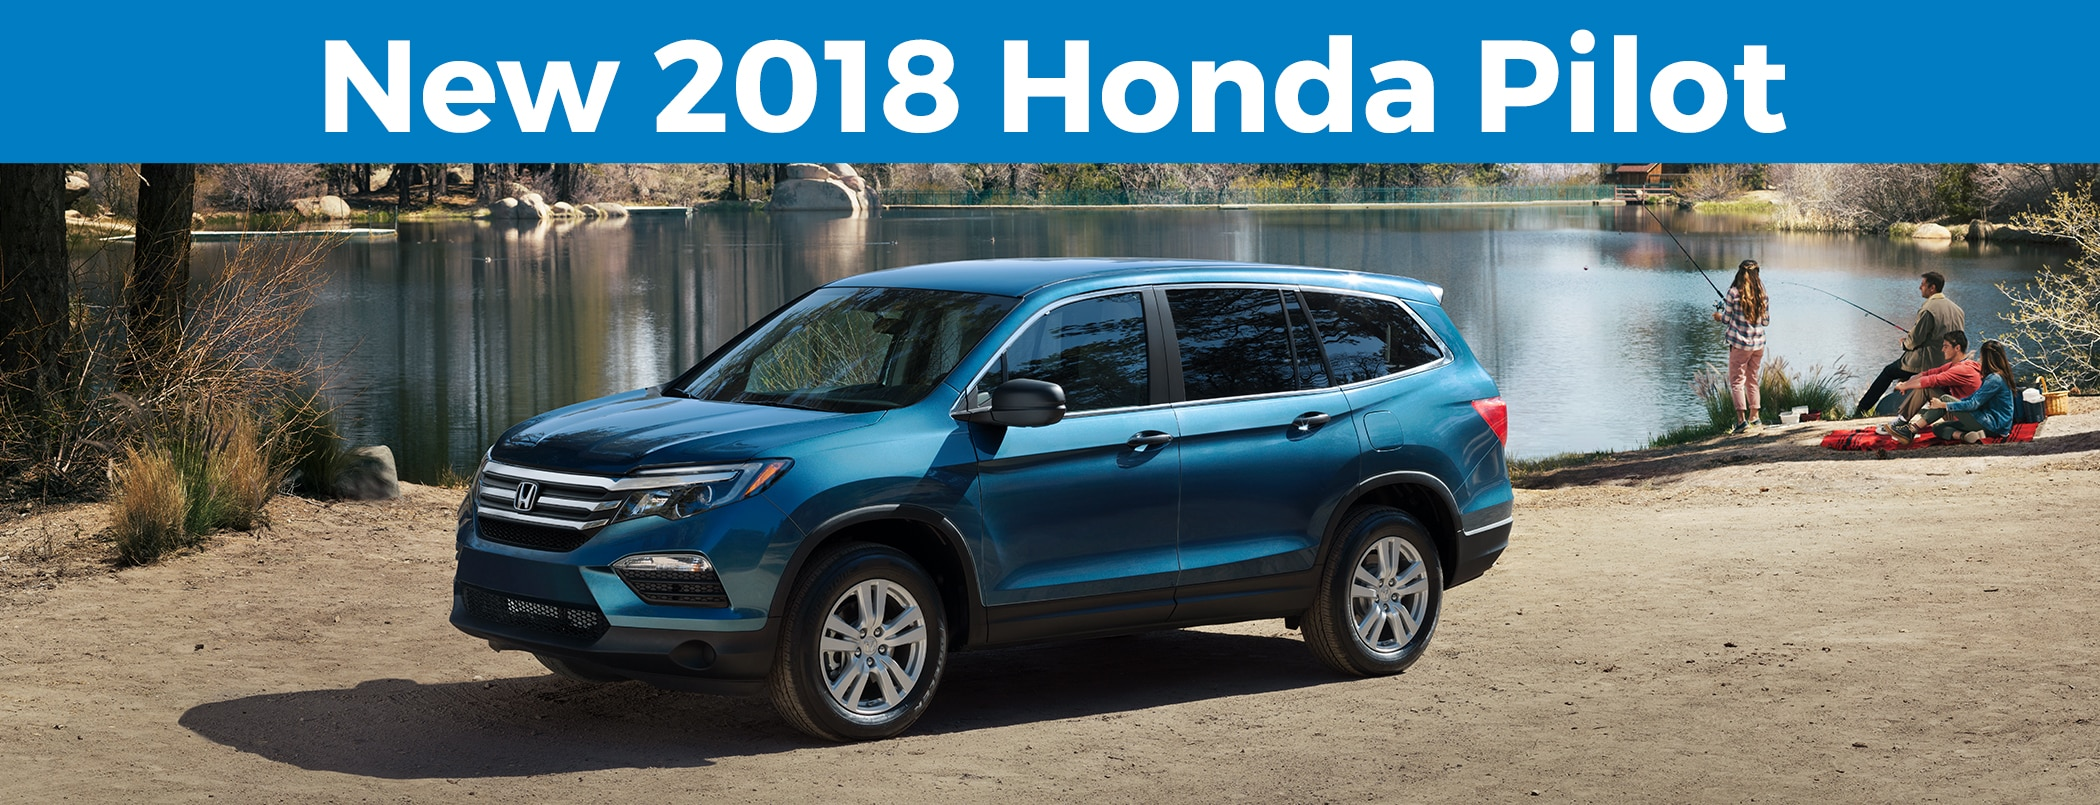 2018 Honda Pilot Review Sandy